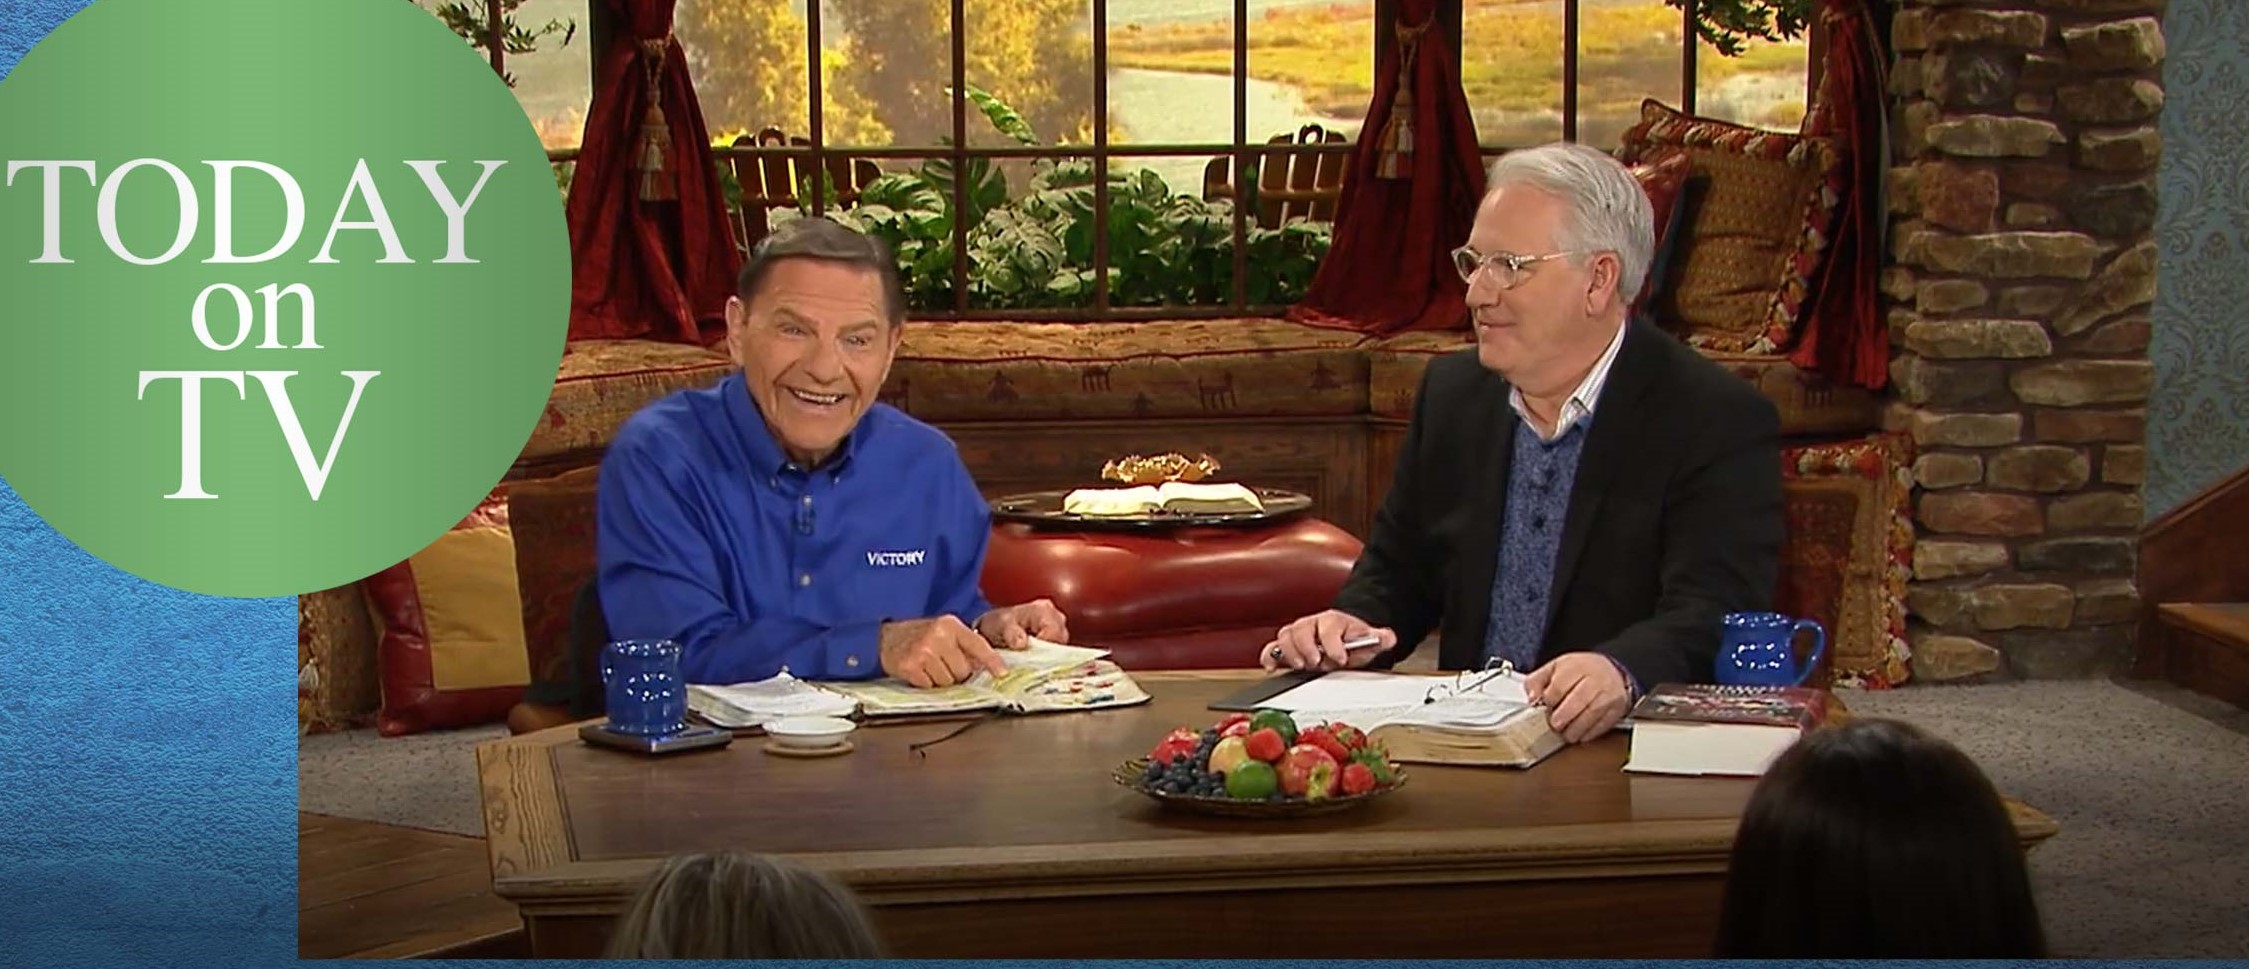 BVOV TV link 02-Aug-2021 - The Goodness of God Chases After You